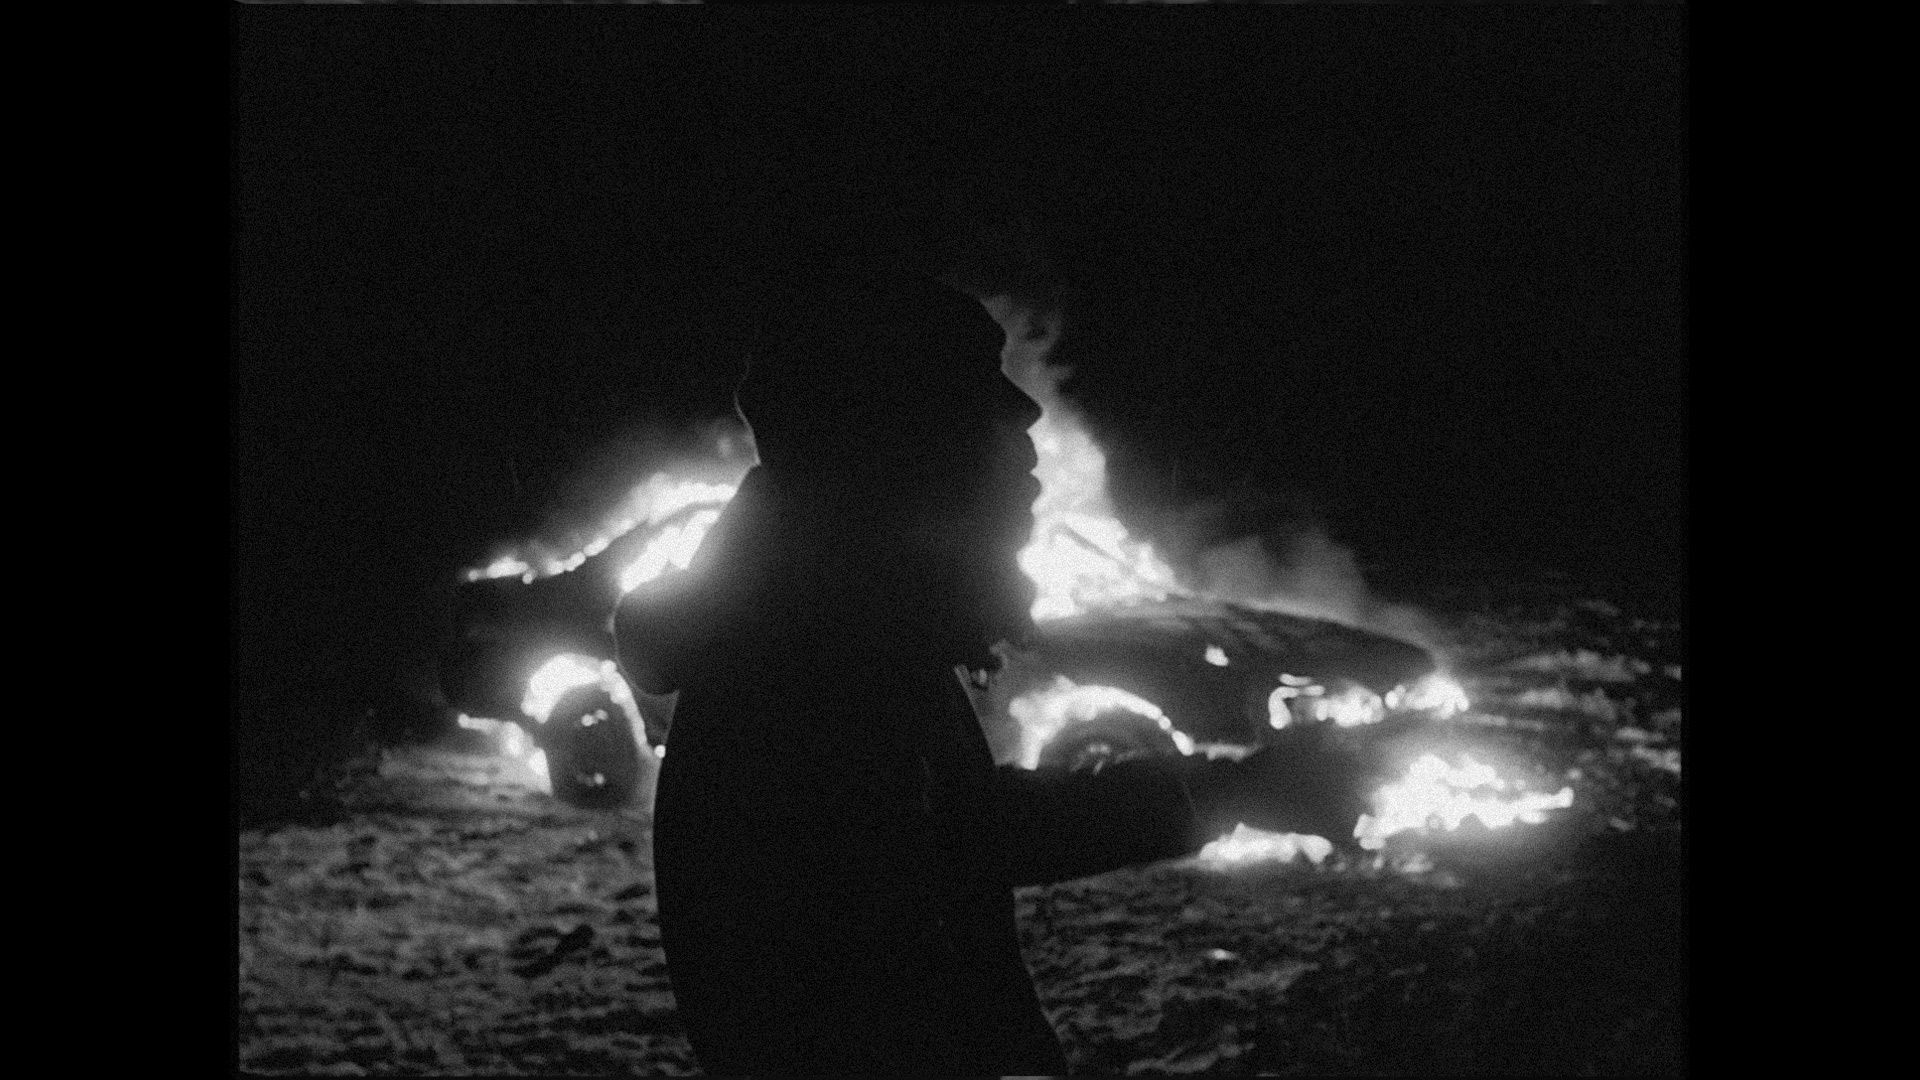 rapper Souldia singing in front of a car on fire in a field in winter for his music video Rouge Neige filmed by Les Gamins featuring Sinik, Seth Gueko and Rick Pagano